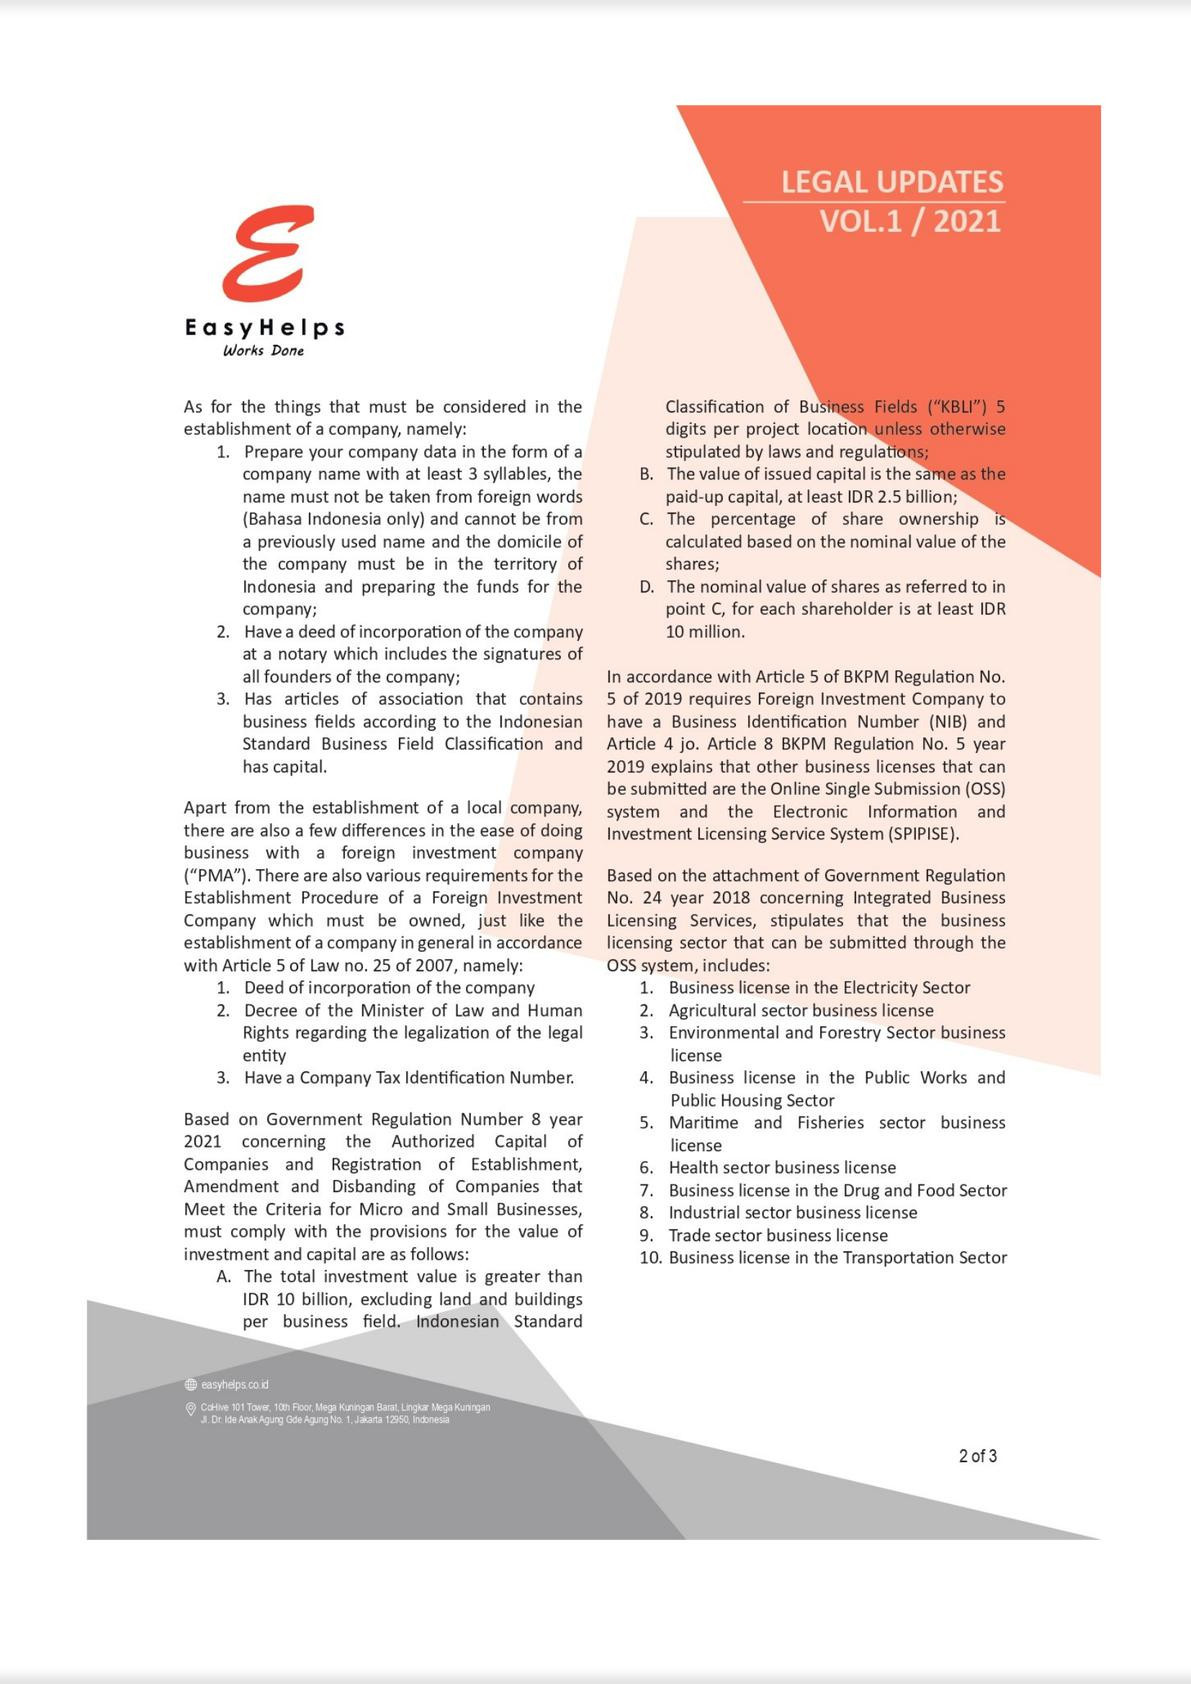 Establishment of a Business Entities Pursuant to the Job Creation Act No. 11 of 2020 - Indonesia-1